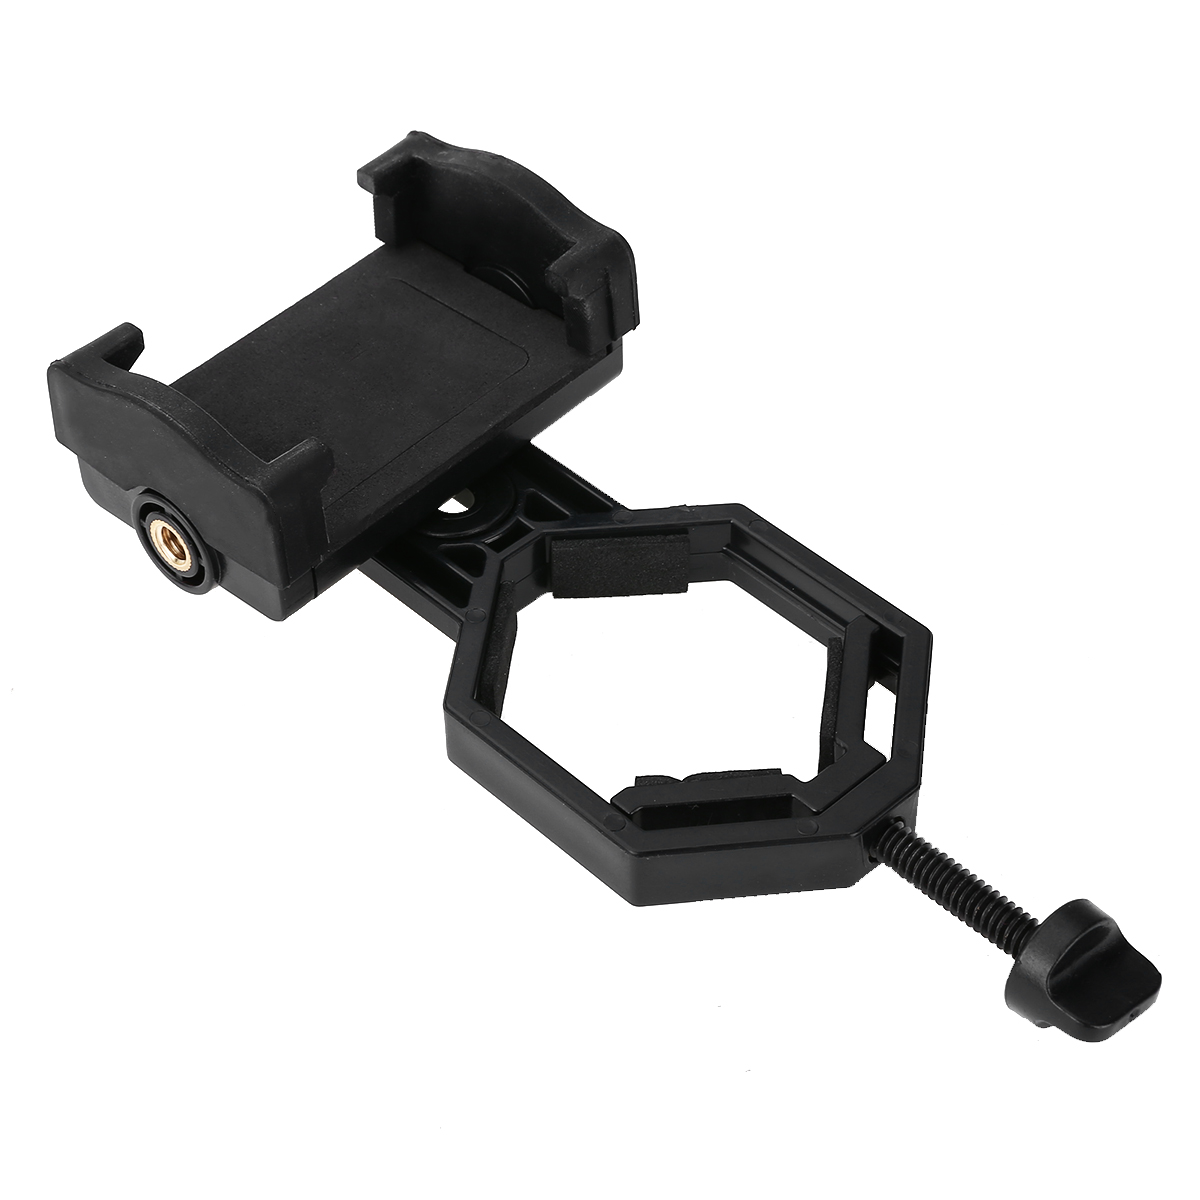 1Pcs Cell Phone Bracket Holder For Monocular Telescope Outdoor Hiking Phone Clip Accessories Bracket Black